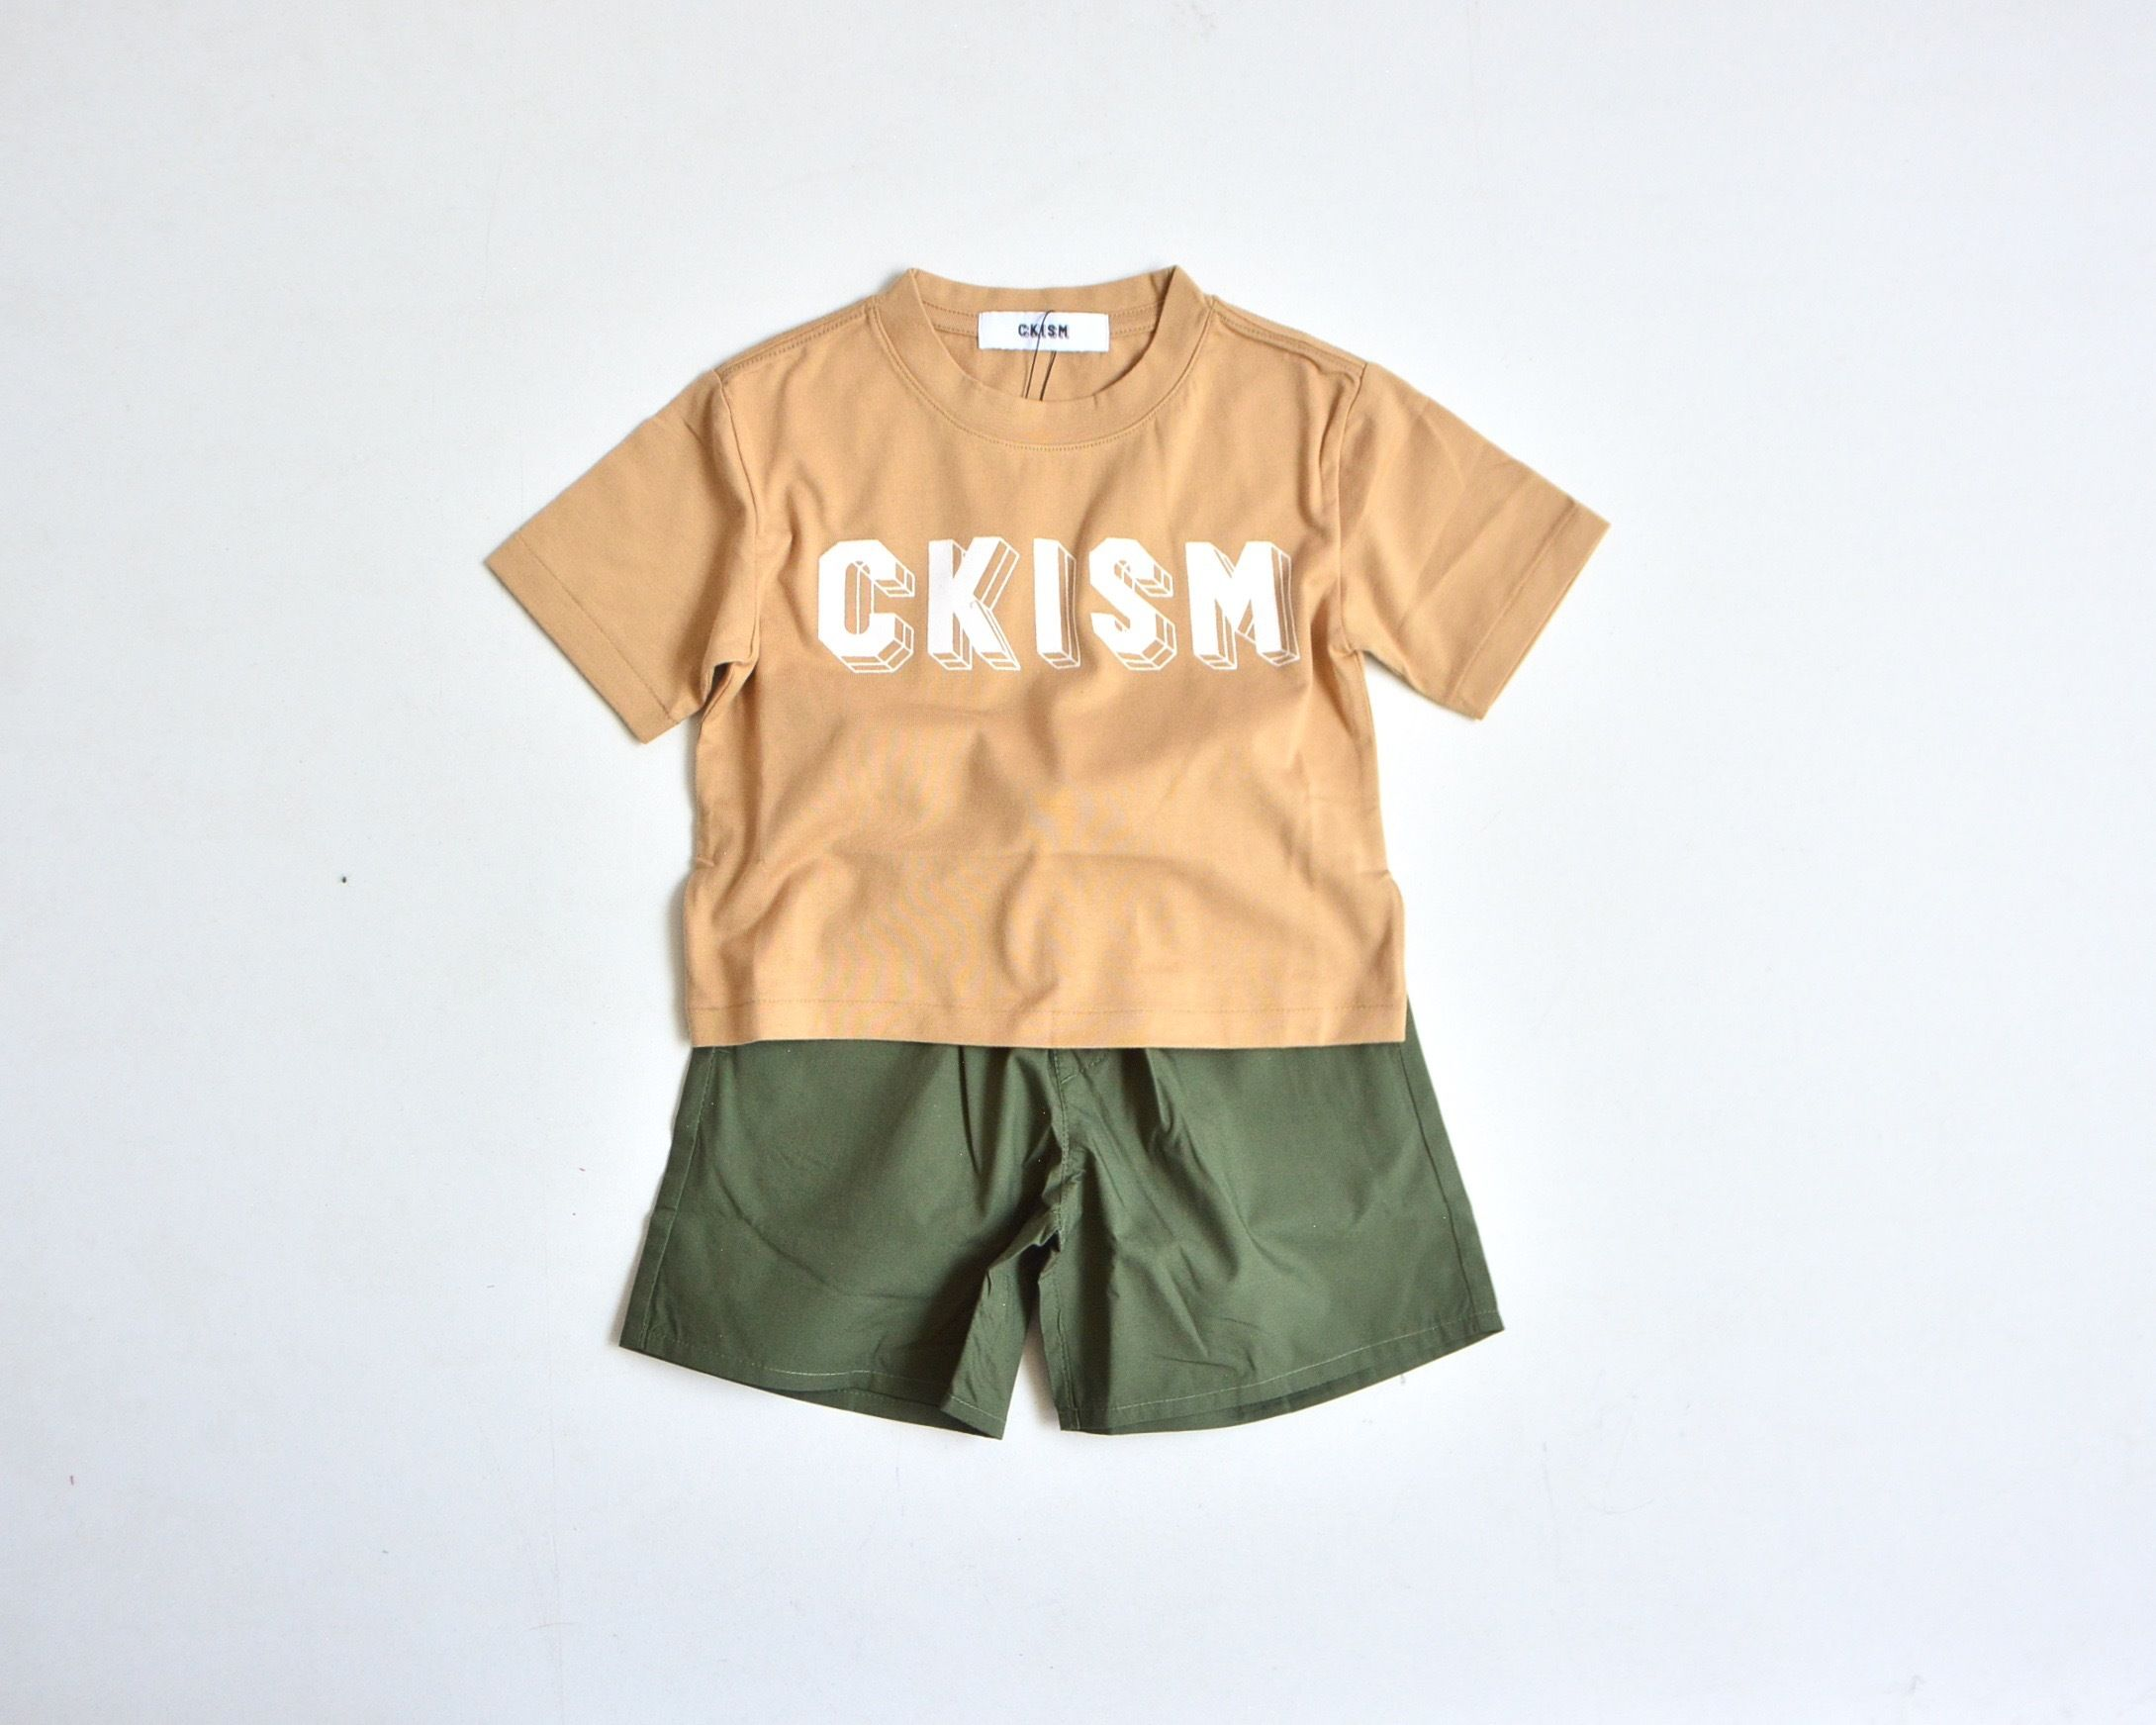 【 CKISM 2017SS 】 Big Tee + Wide Shorts Set / Beige x Kahki / size 100~150cm